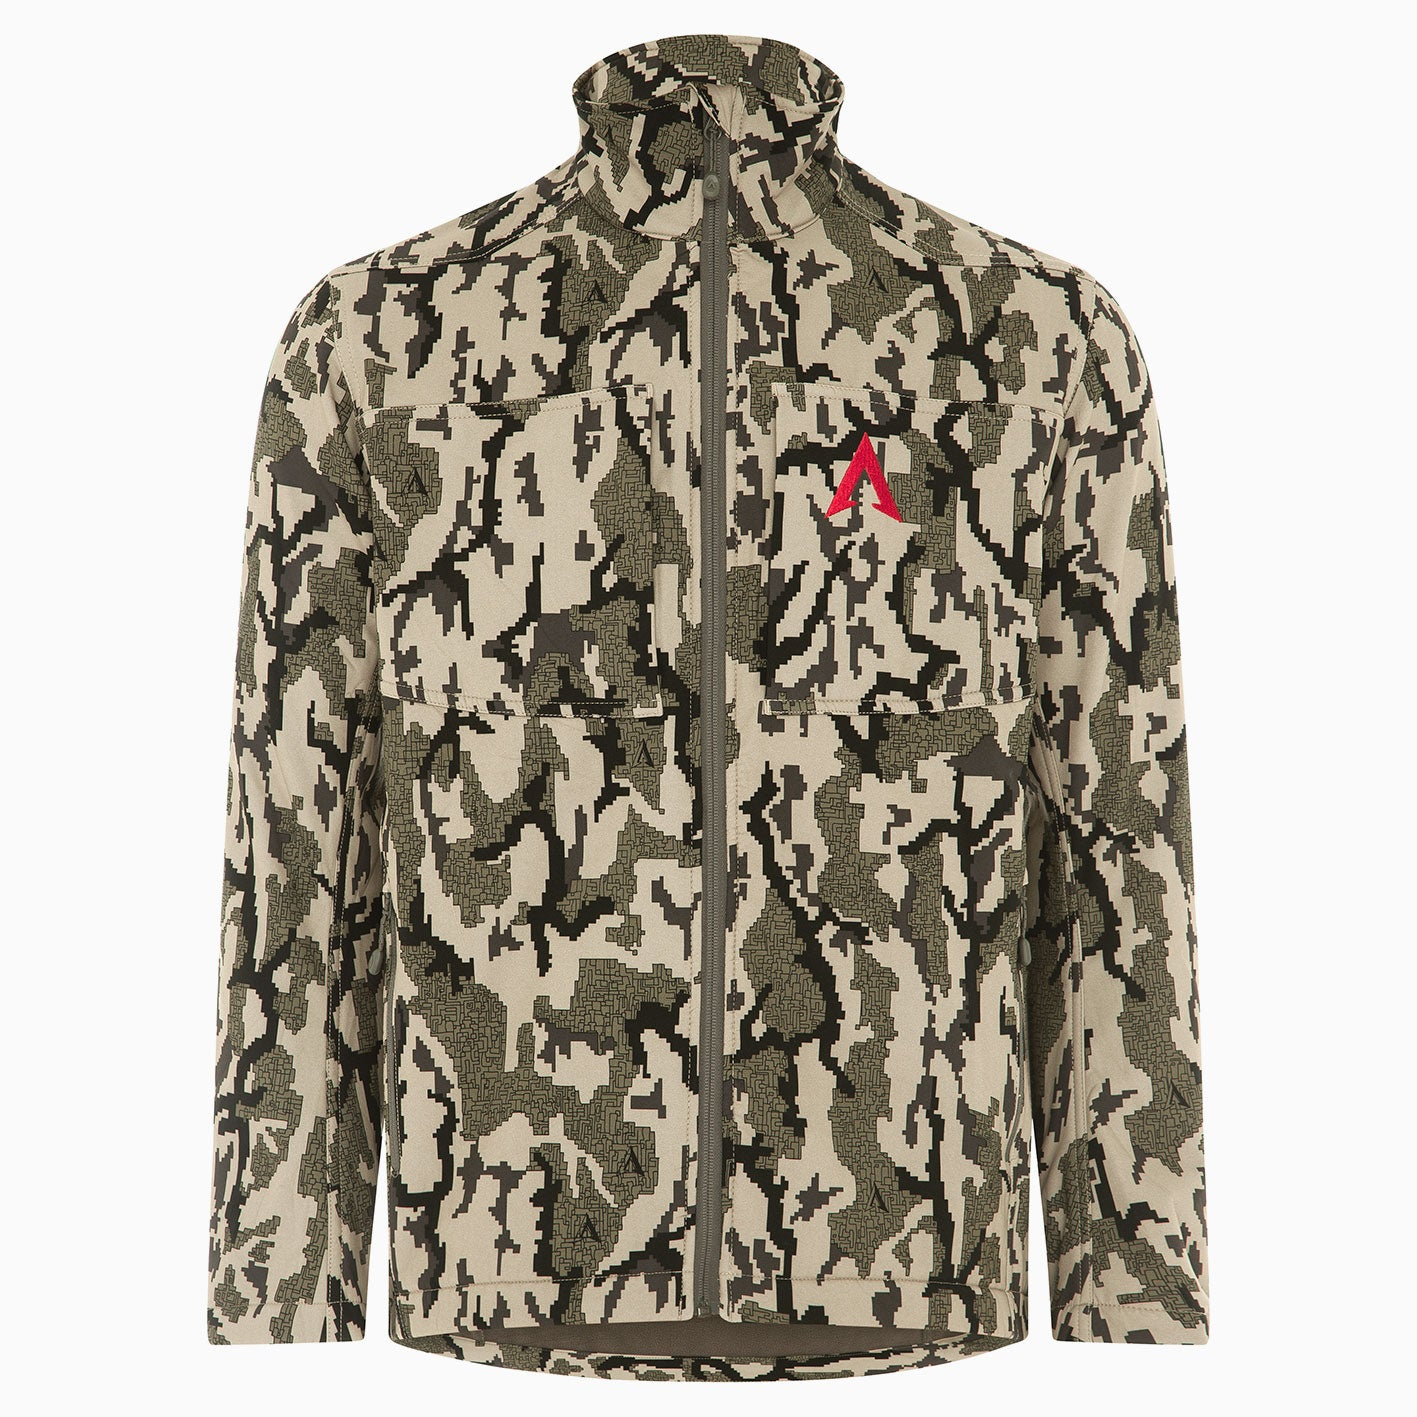 2018 - Mens Hunting - Peak Season Jacket